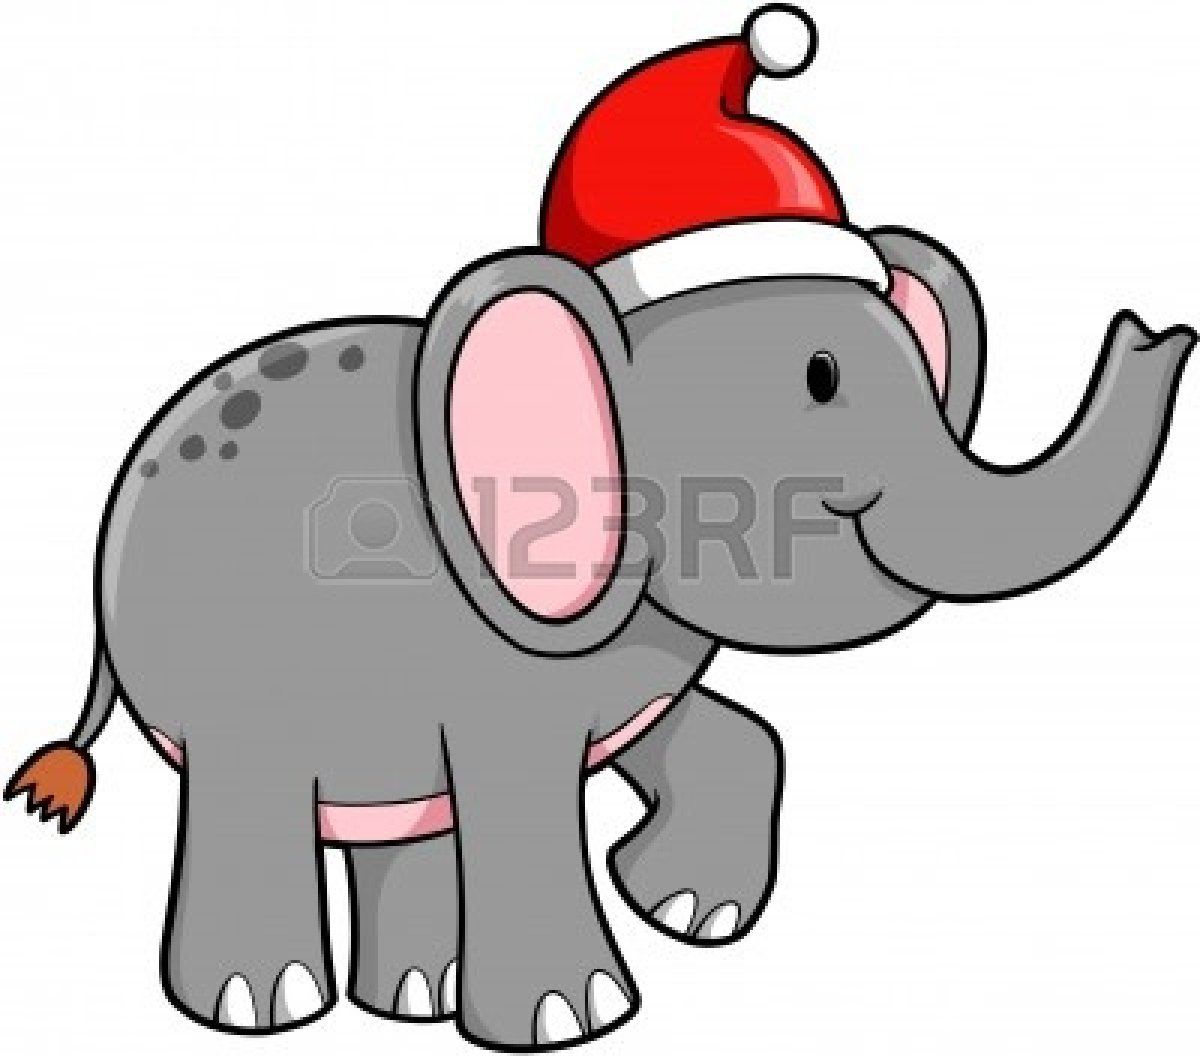 circus elephant clipart clipart panda free clipart images rh clipartpanda com vintage circus elephant clipart circus elephant clipart free